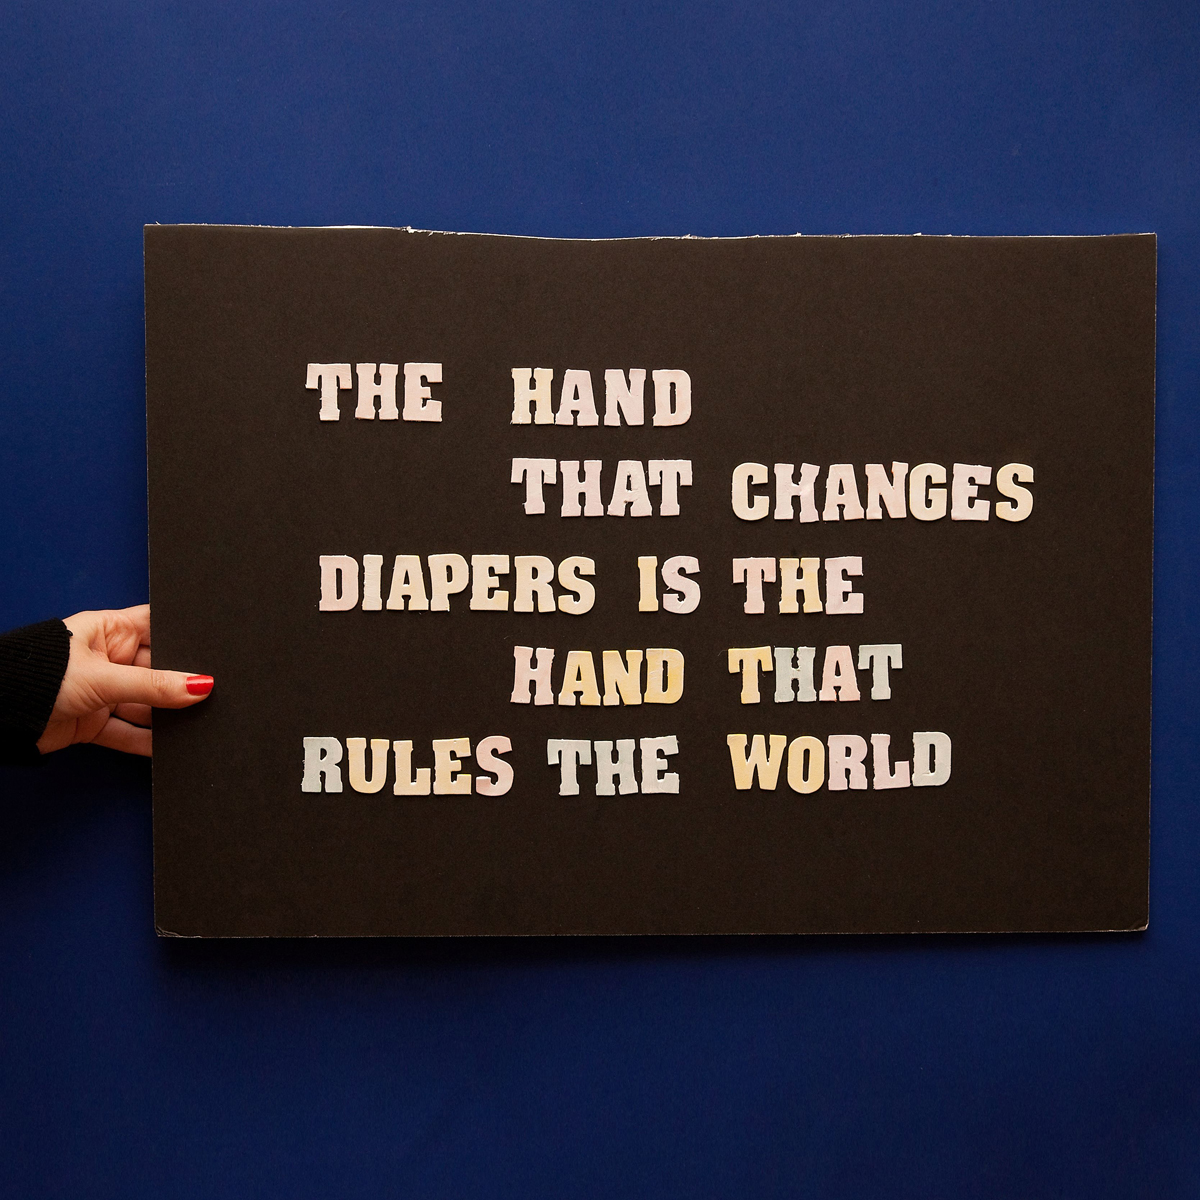 45 Protest Signs_Brandon and Olivia Locher_19_The Hand That Changes